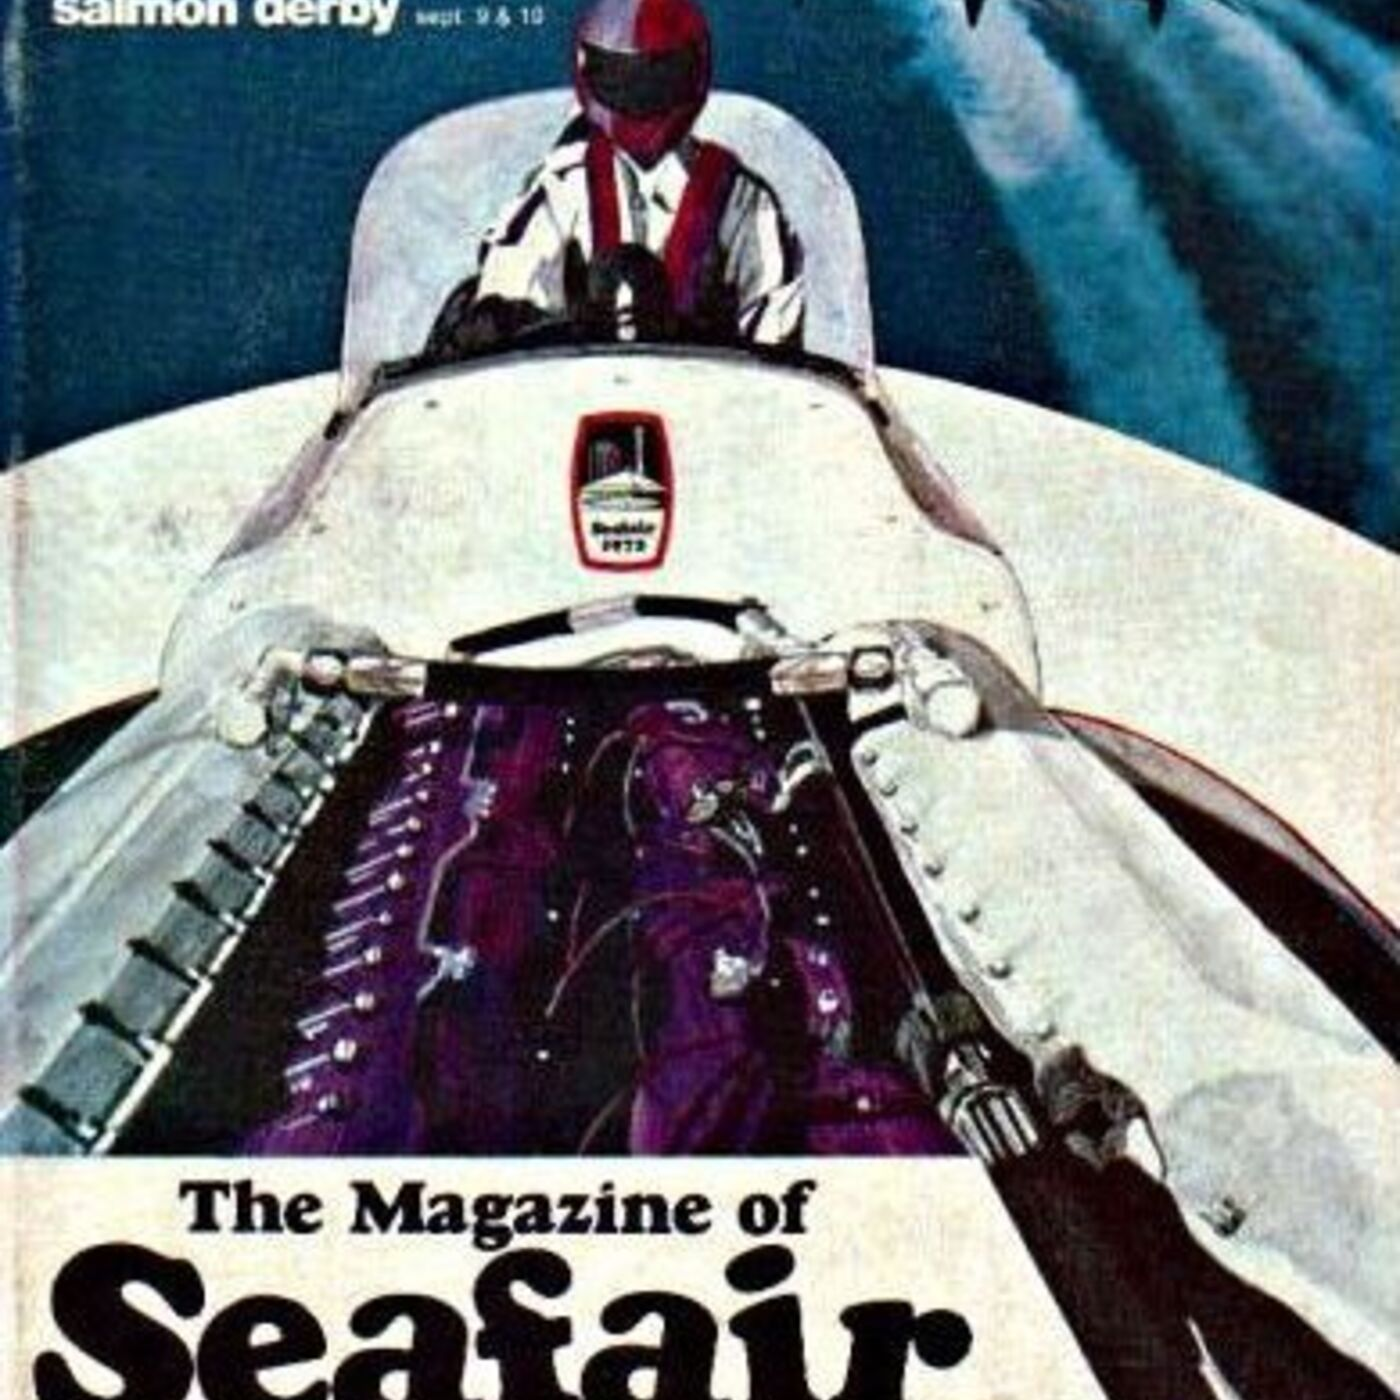 Episode 46: 1972 Seafair Regatta Radio Broadcast